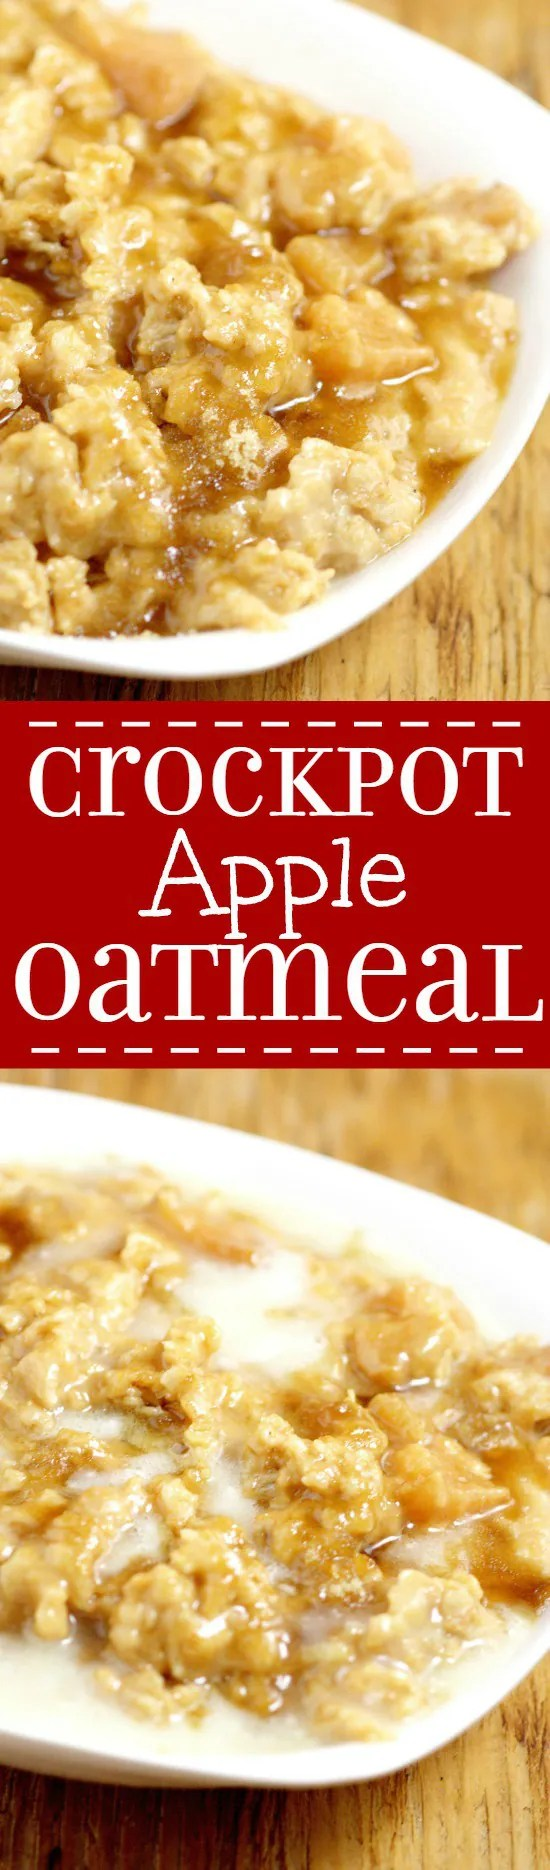 Overnight Crockpot Apple Oatmeal recipe with tangy apples, nutty oats ...